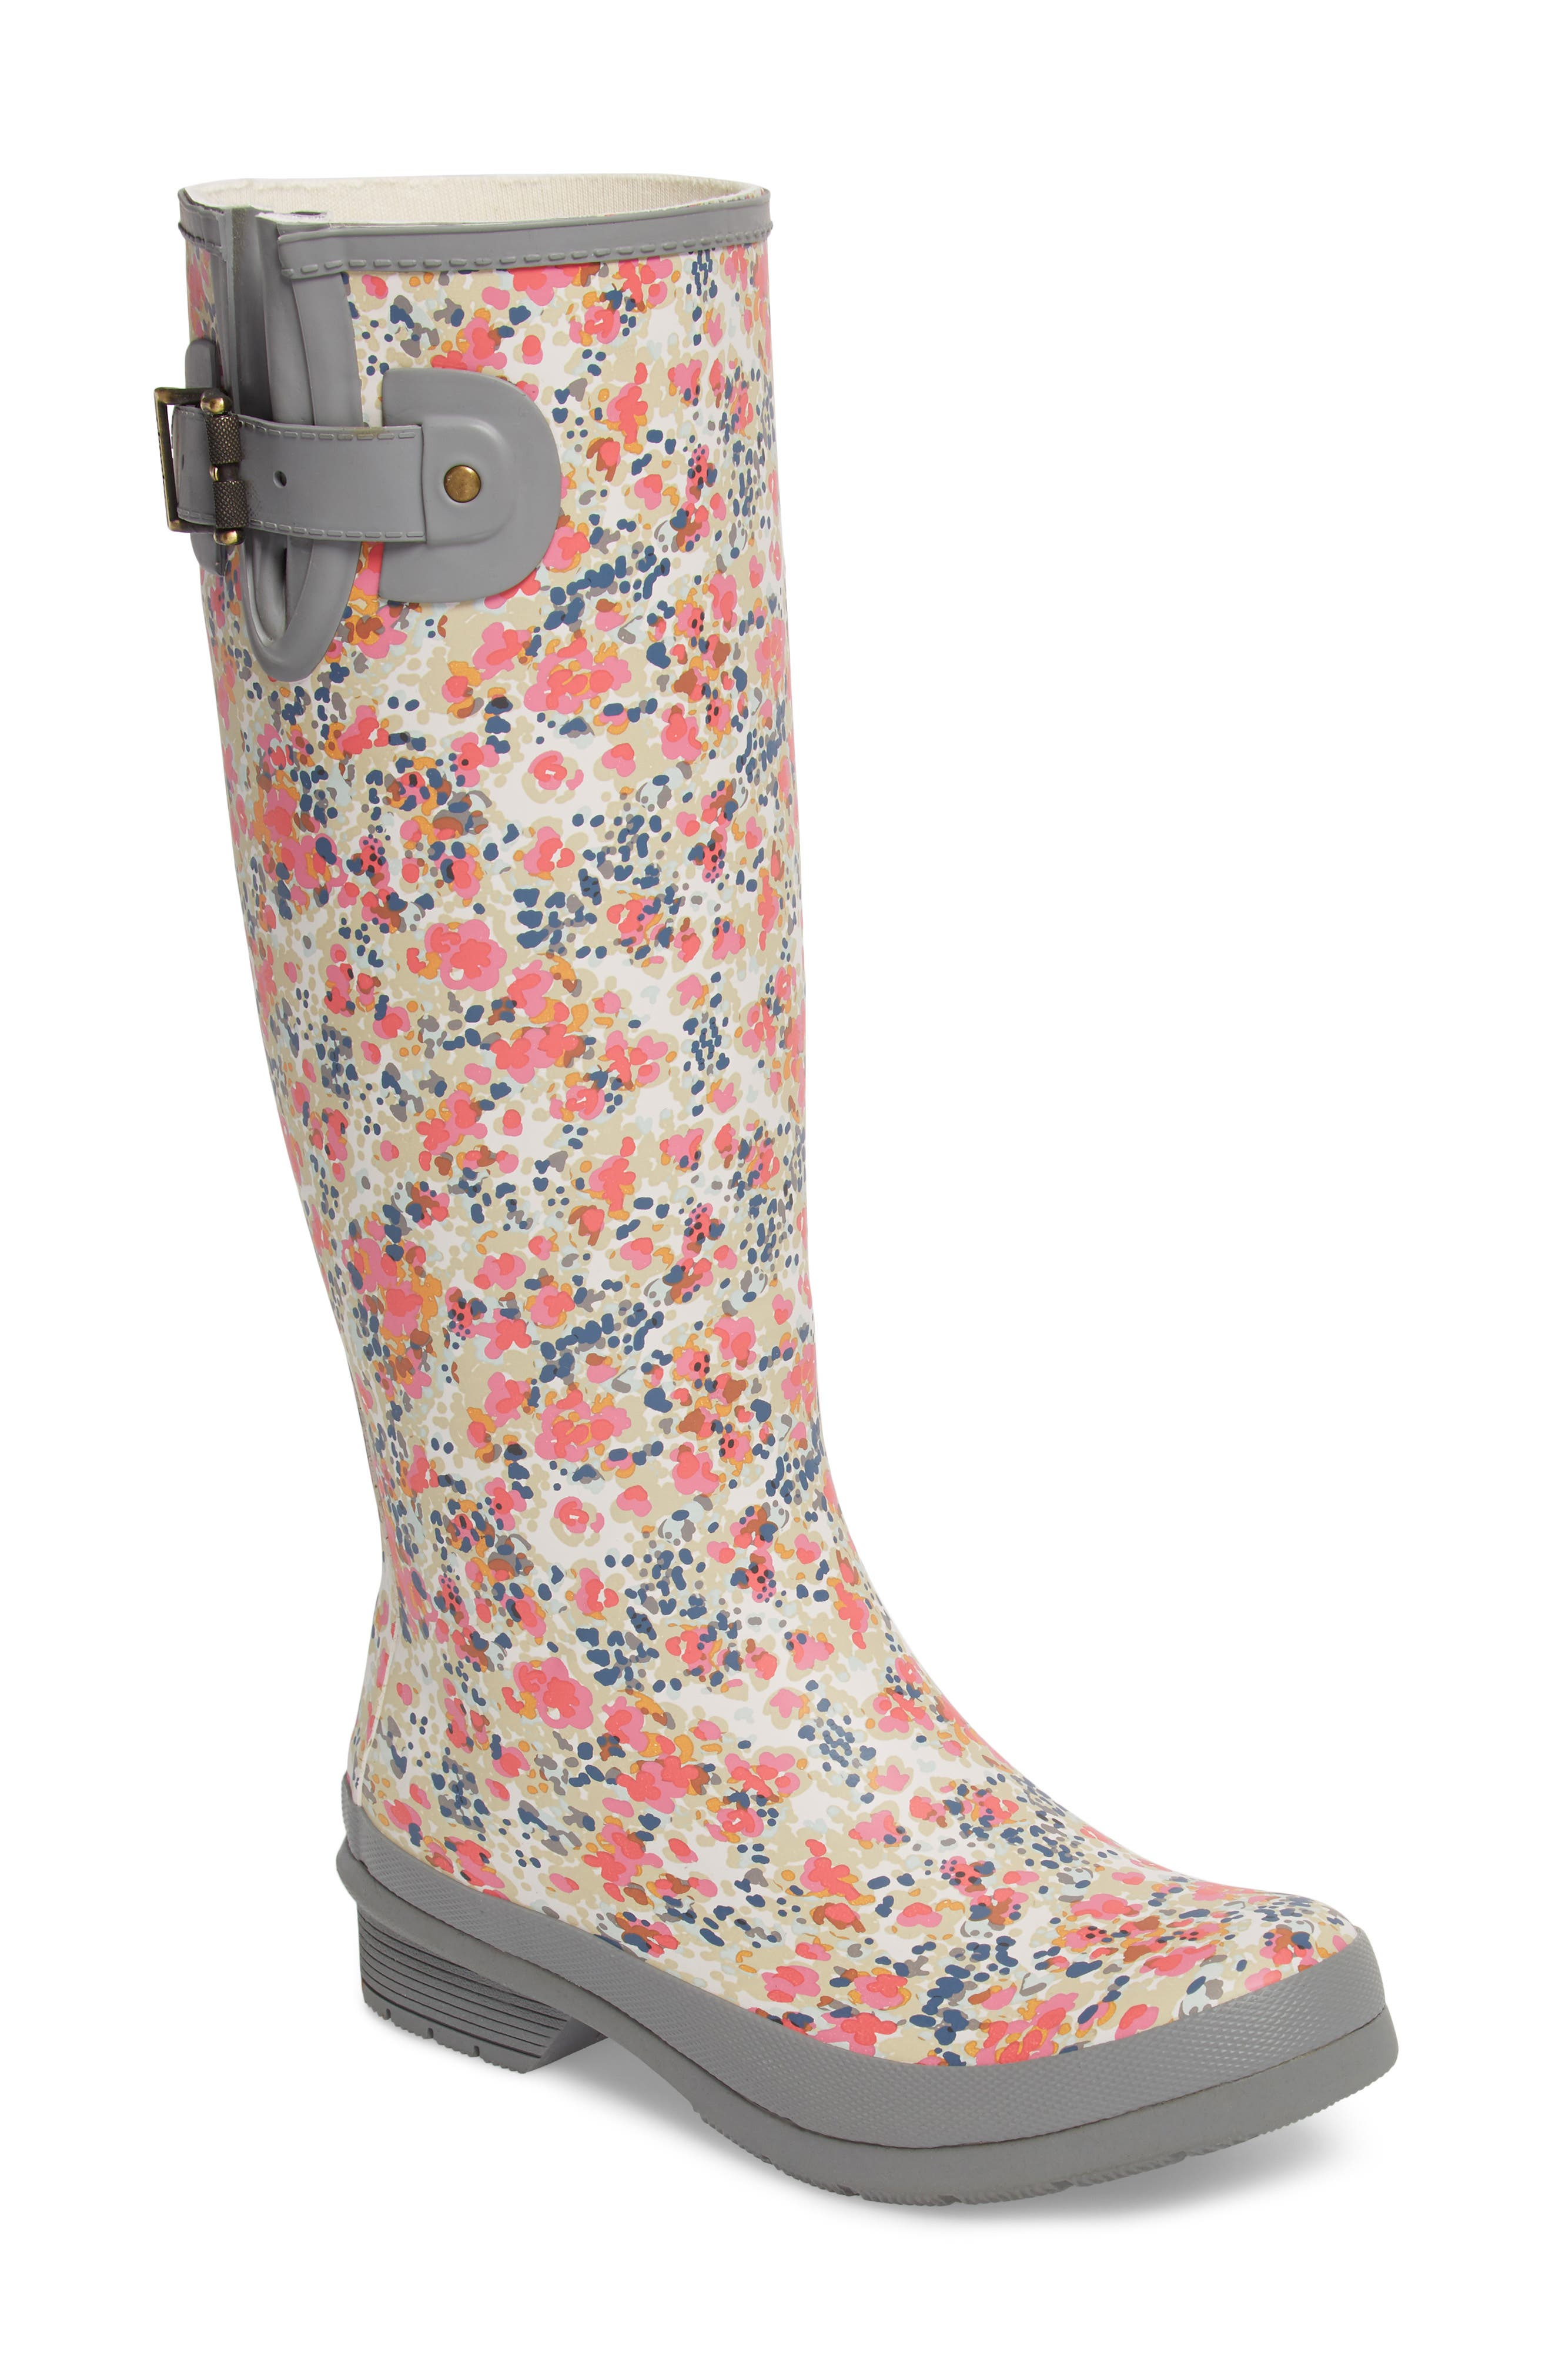 Julia Floral Waterproof Rain Boot,                             Main thumbnail 1, color,                             Gray